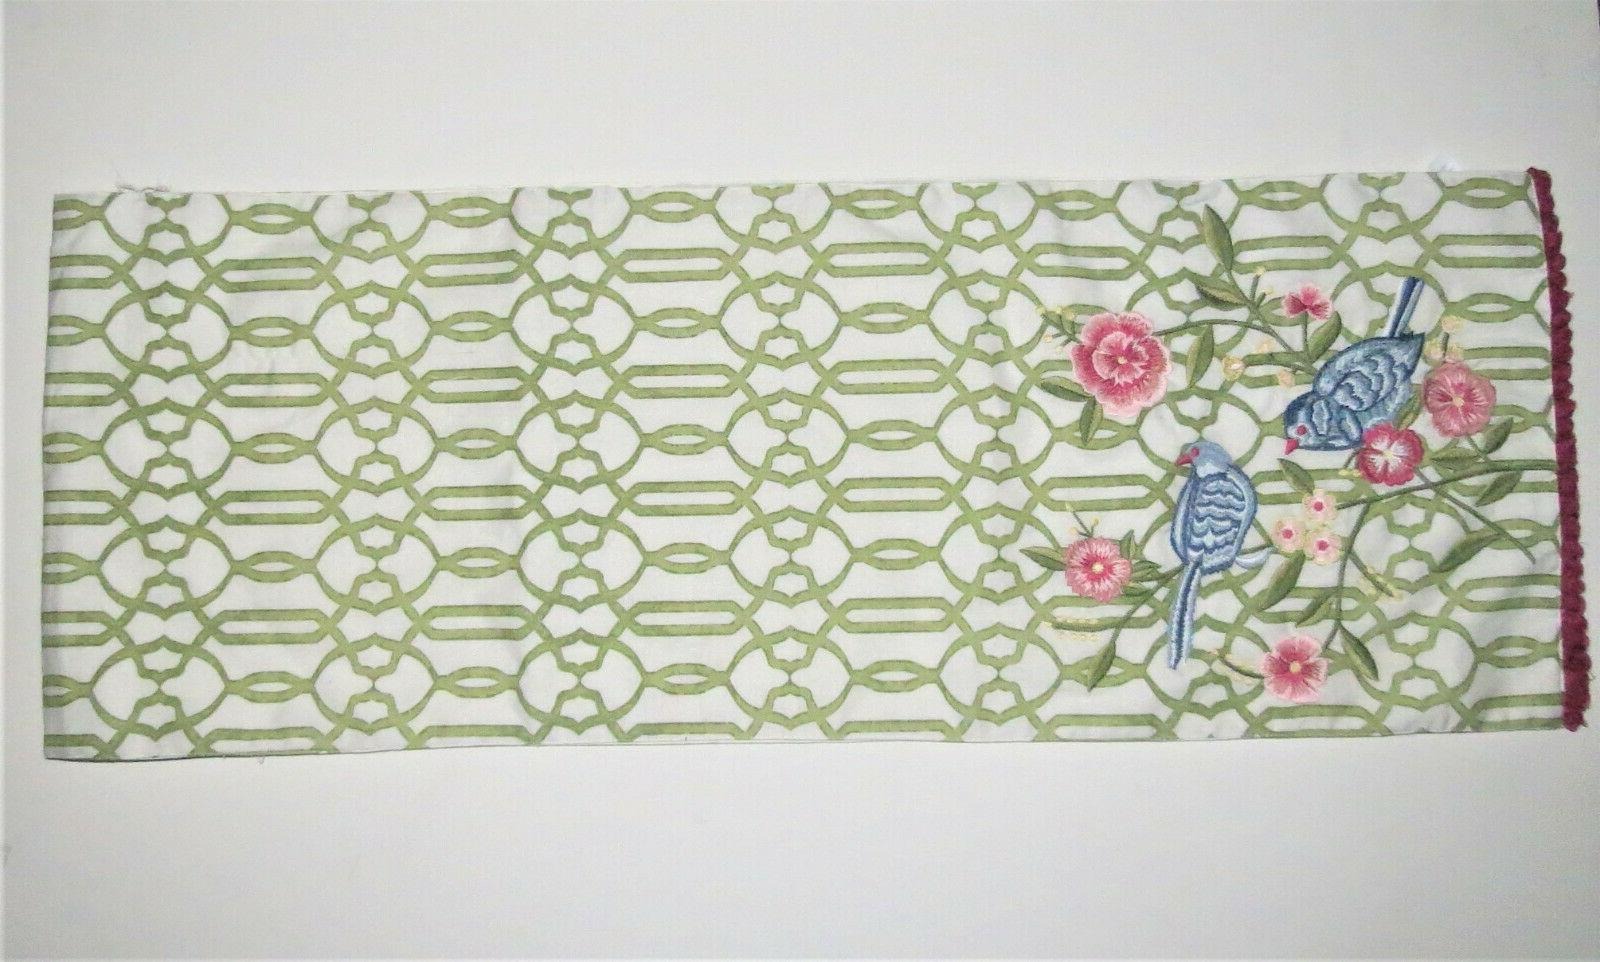 Pier One TABLE RUNNER FLORAL WITH BIRDS Decor